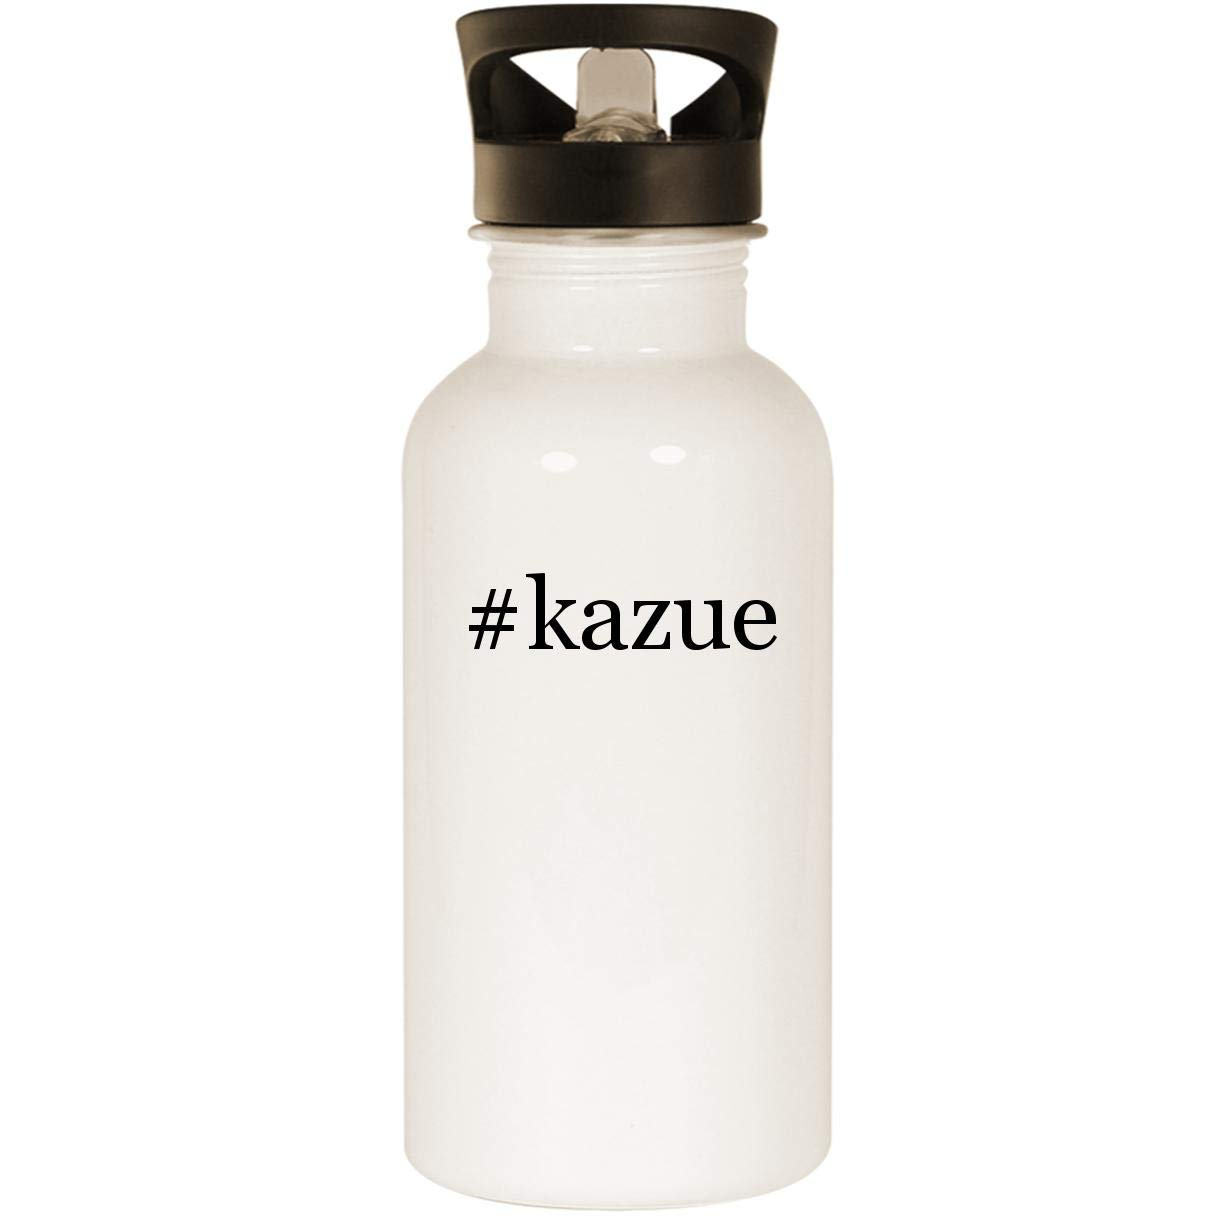 #kazue - Stainless Steel 20oz Road Ready Water Bottle, White